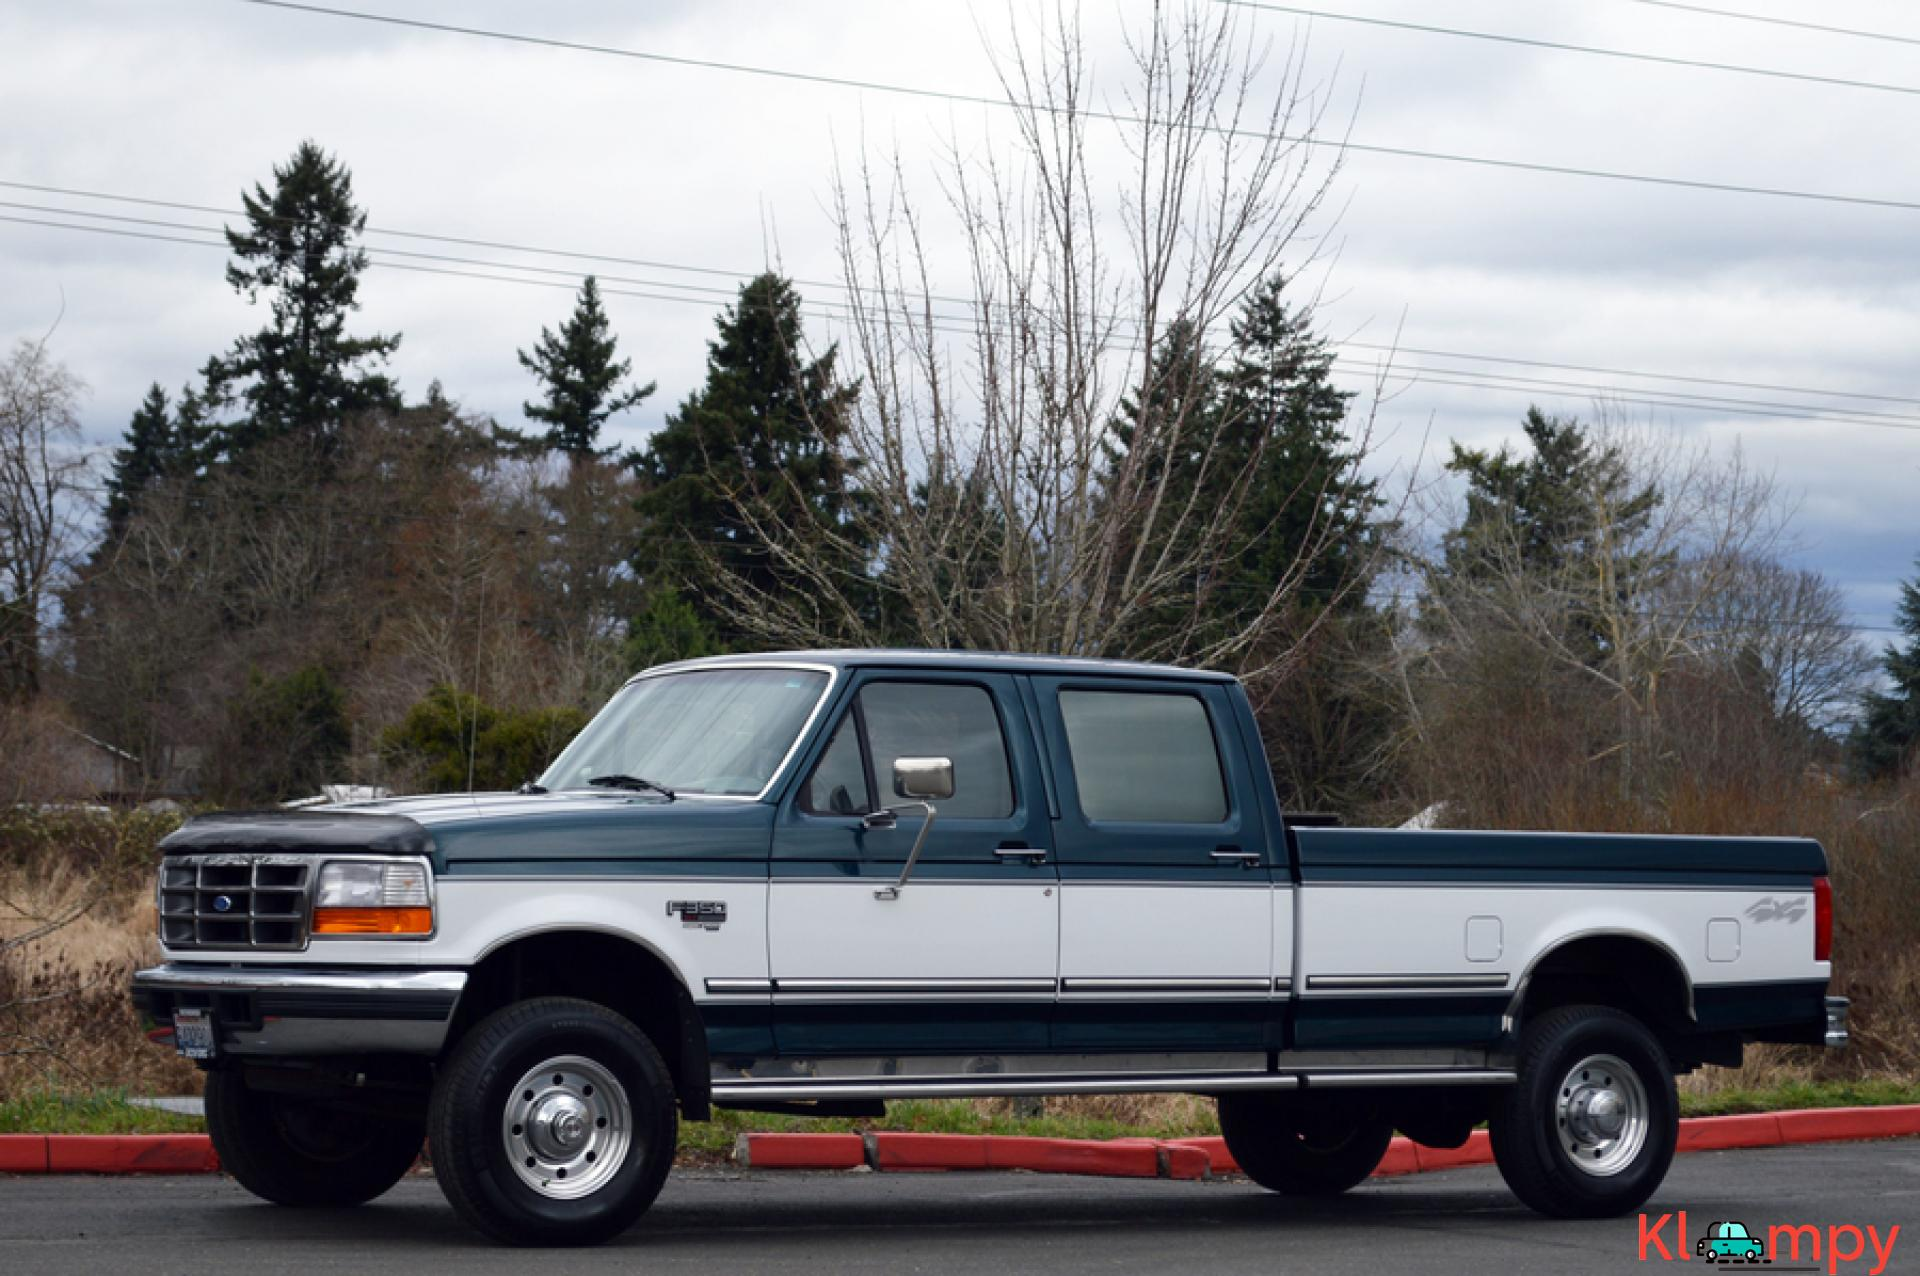 1997 FORD F-350 CREW CAB LONG BED 4WD 7.3L - 12/20